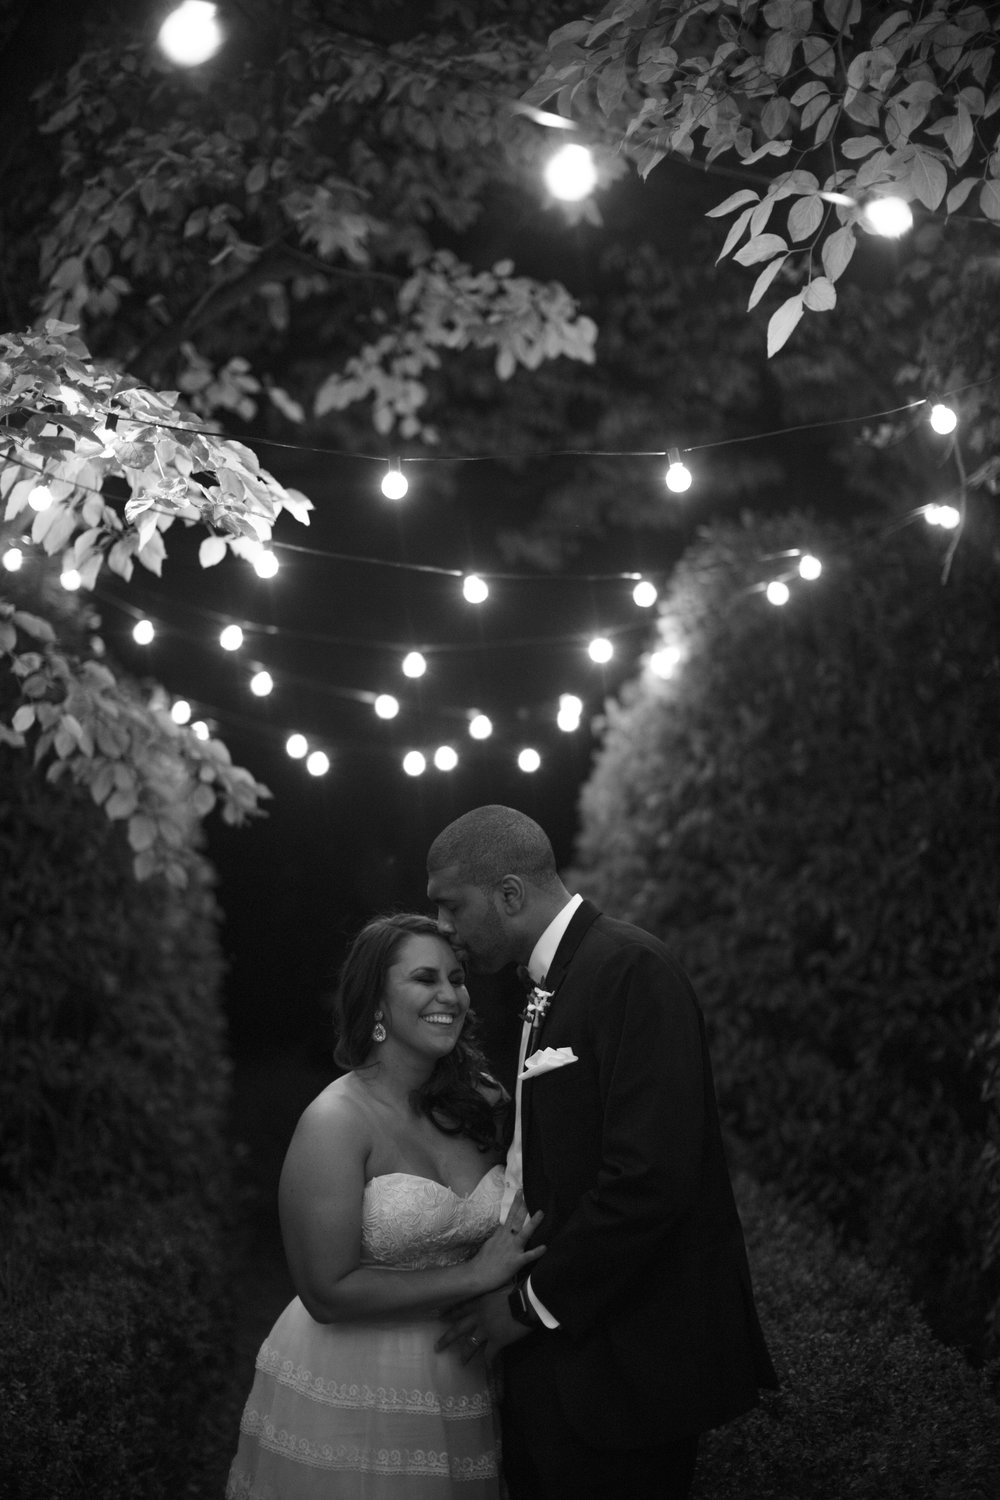 Wedding photography bride and groom string lights first look